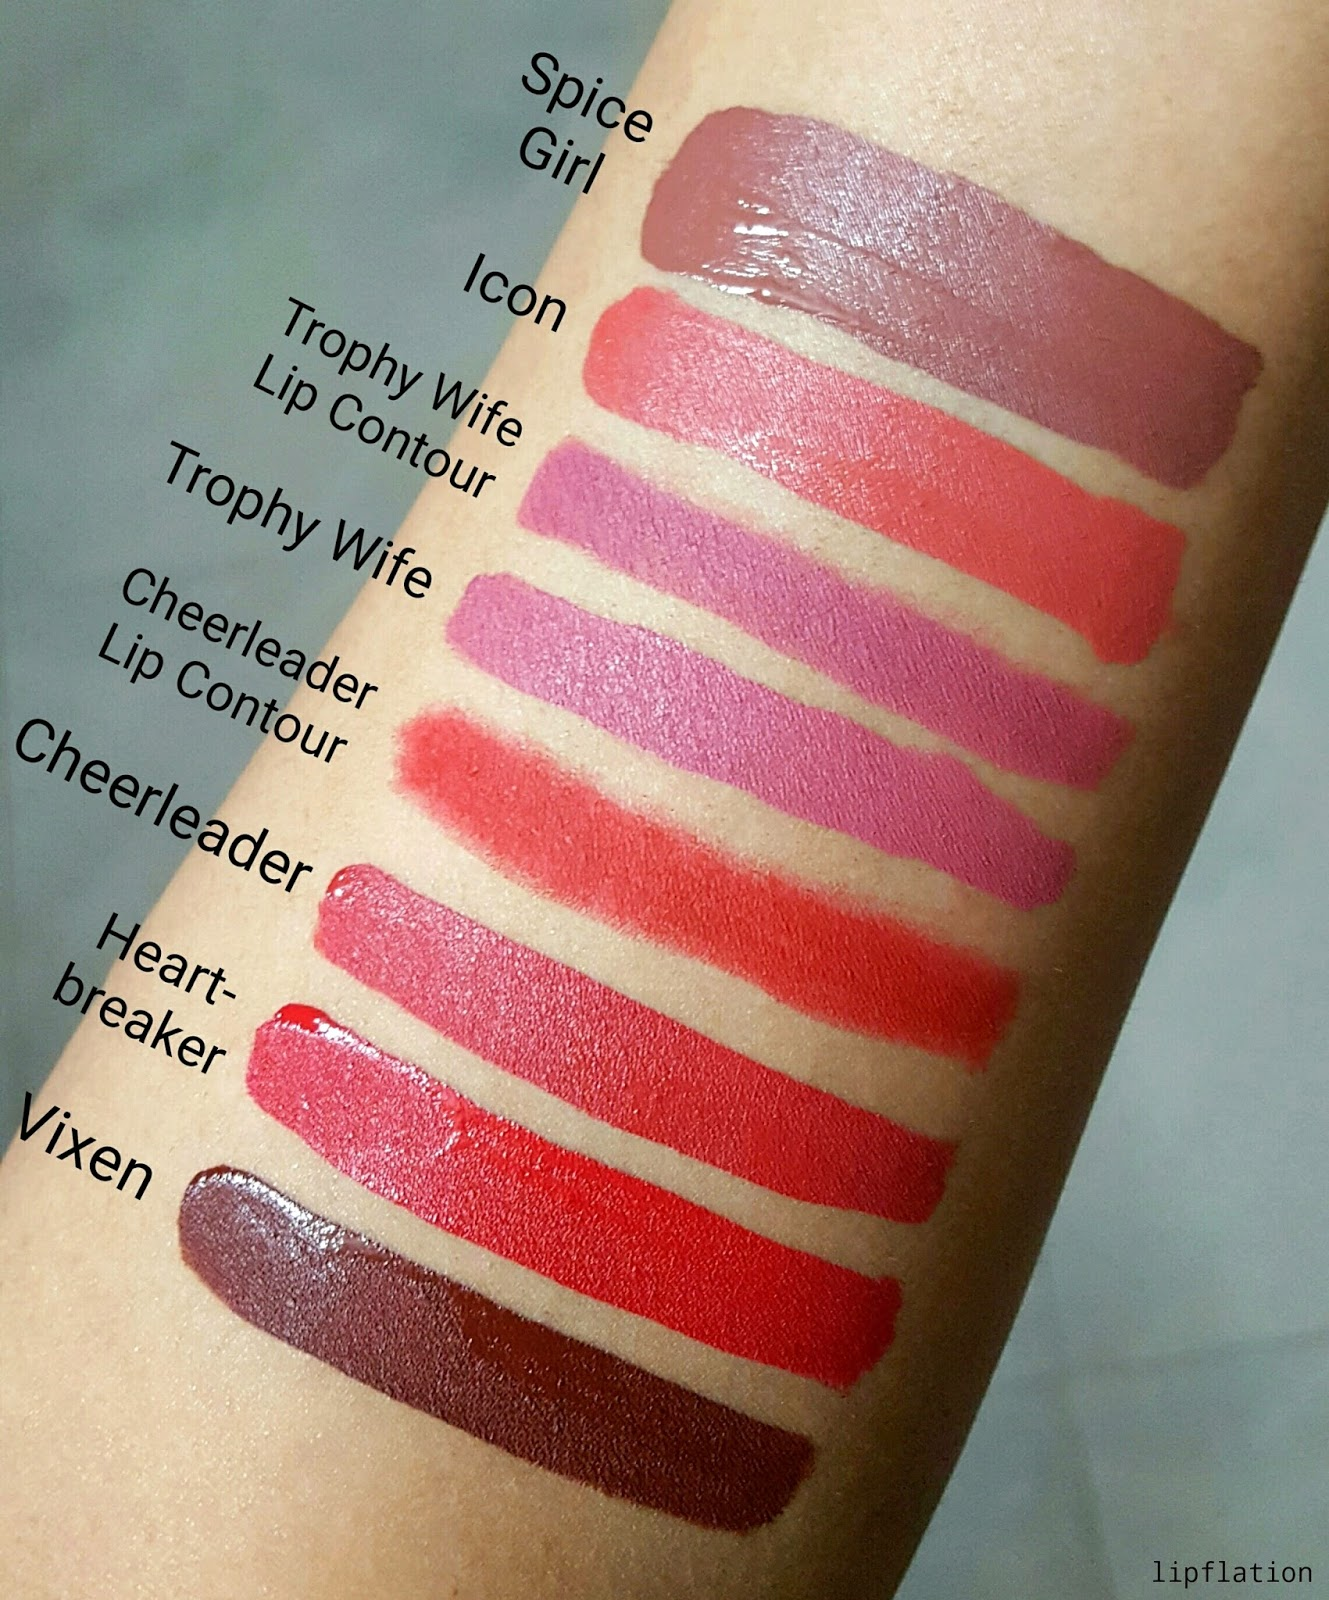 Lipstick shades with colour name